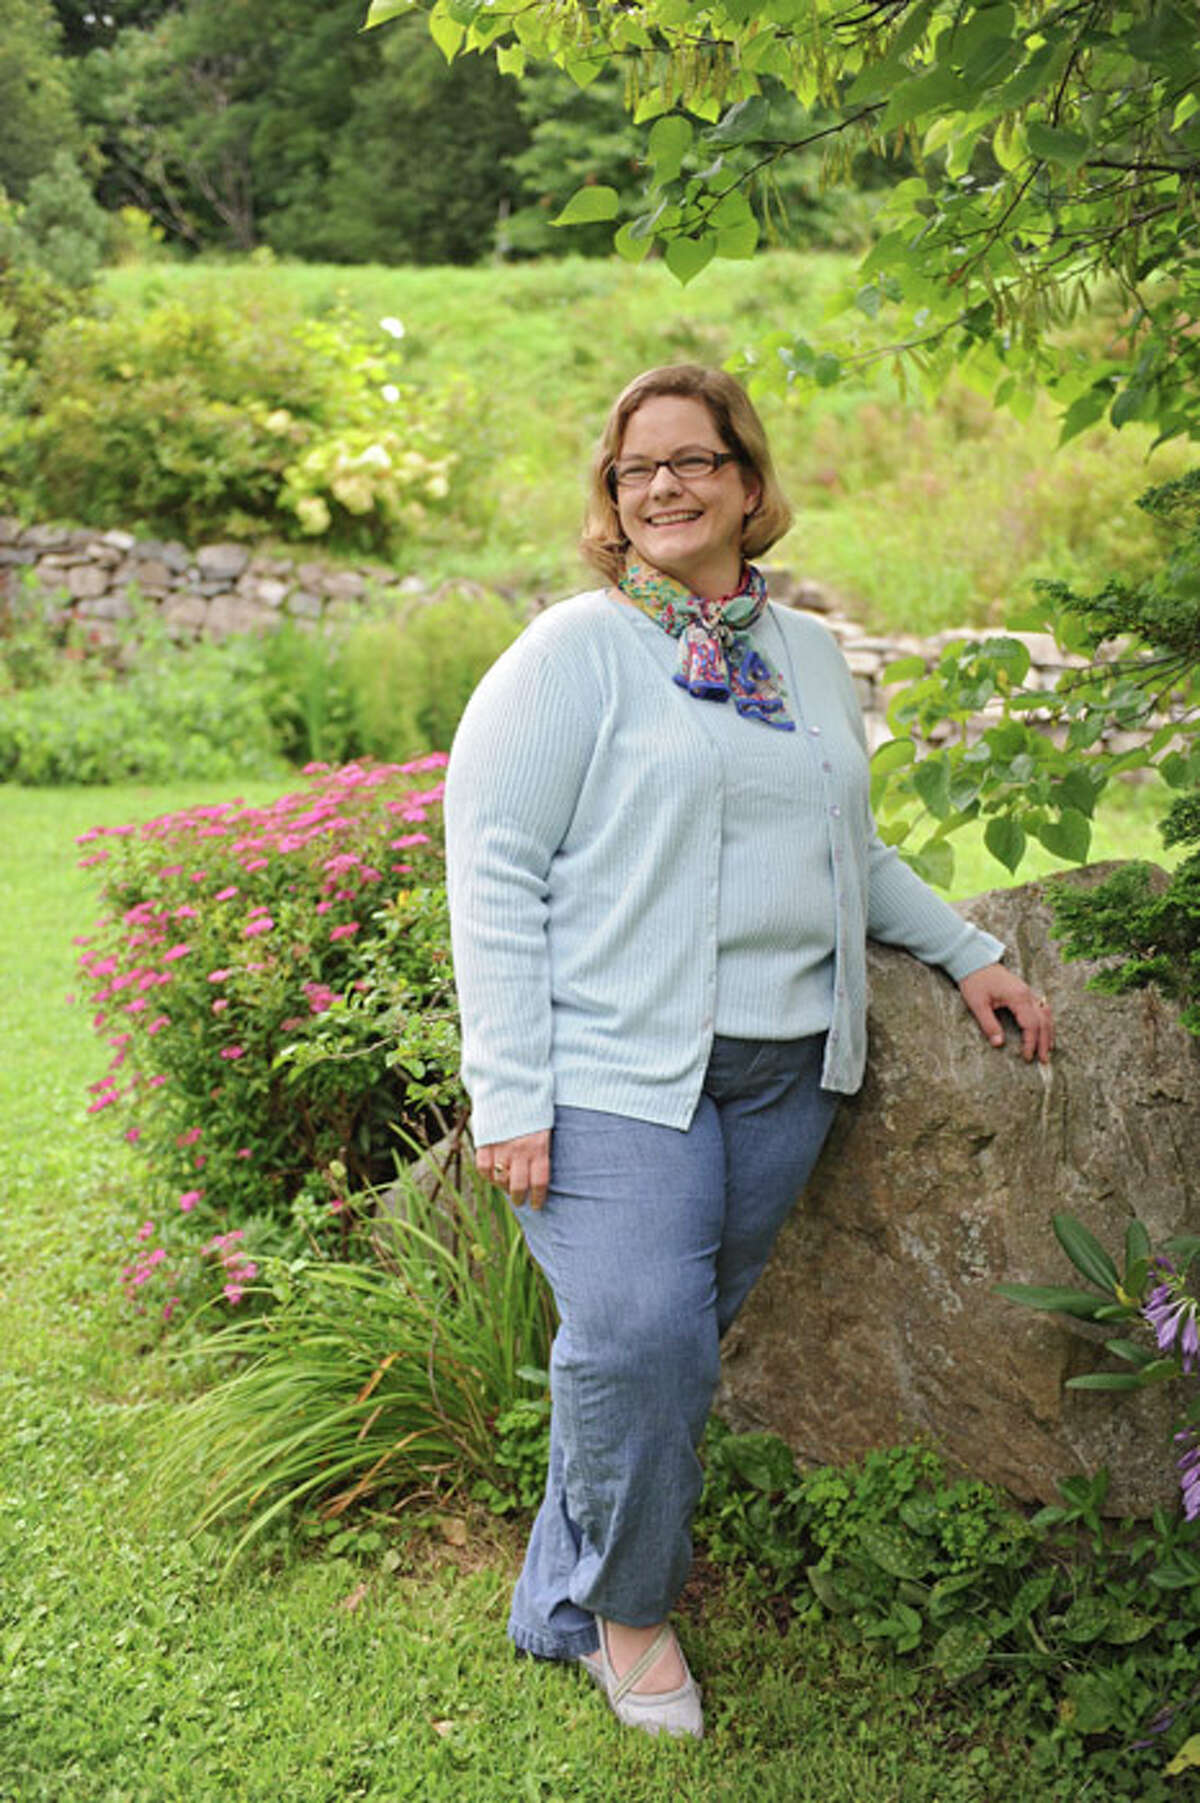 Midwife K. Michelle Doyle started Local Care Midwifery in 2009.